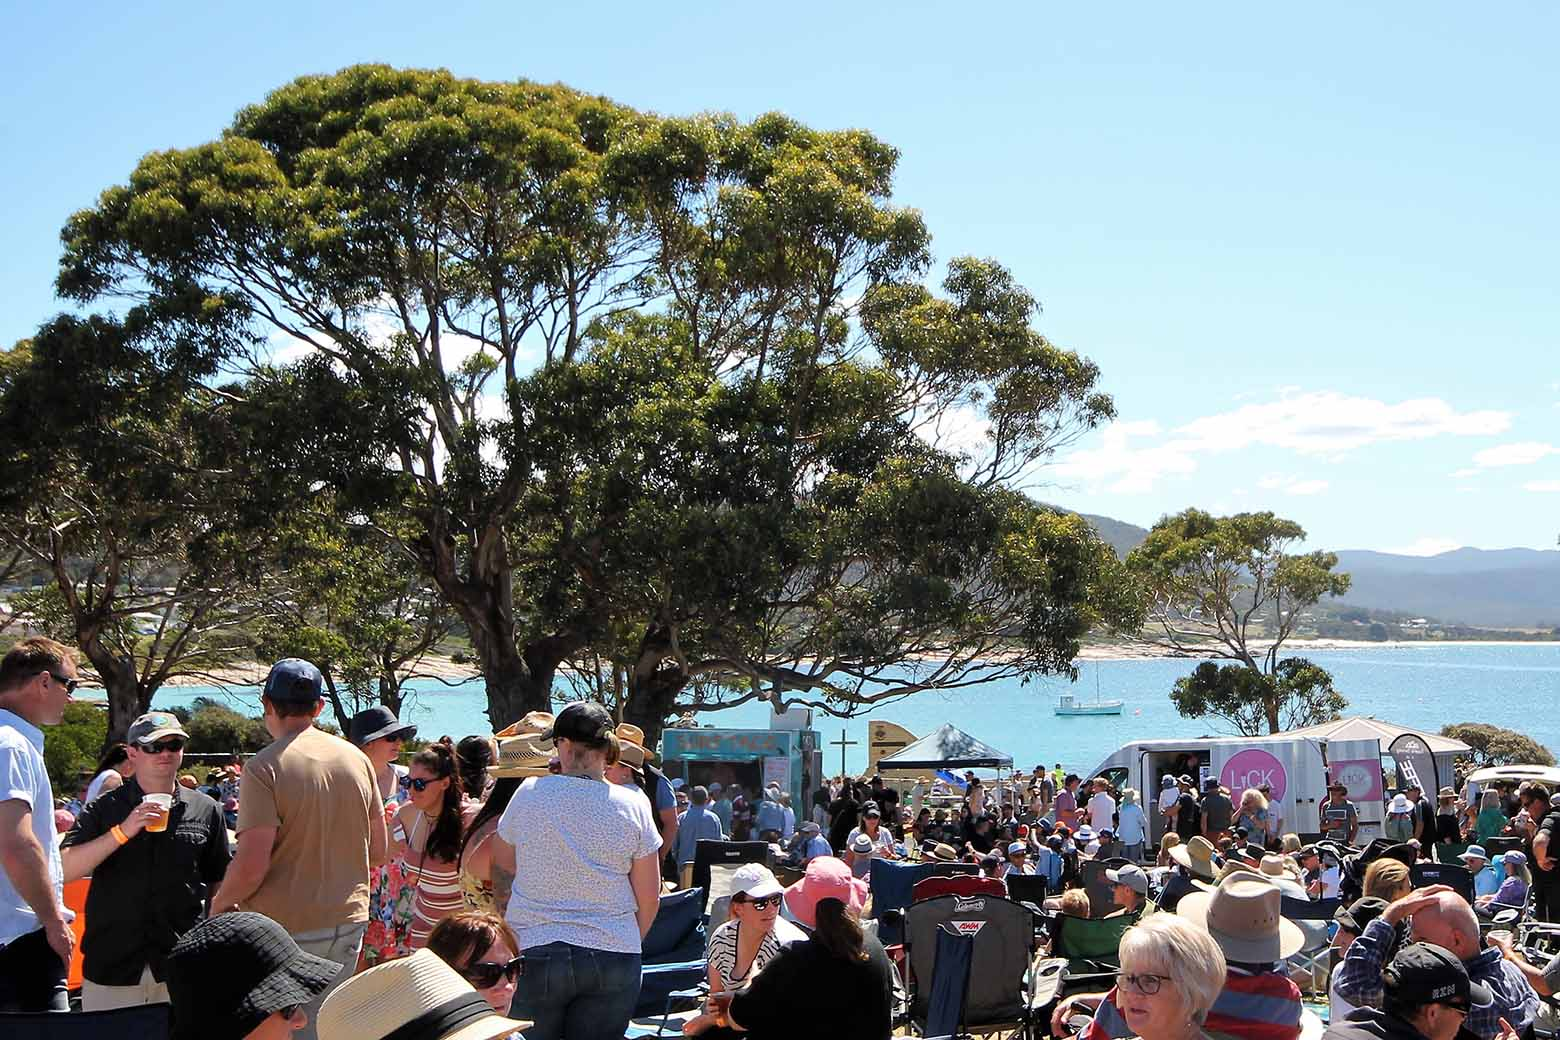 Experience the Bicheno Food and Wine Festival on the East Coast of Tasmania on your Lap of Tasmania road trip.